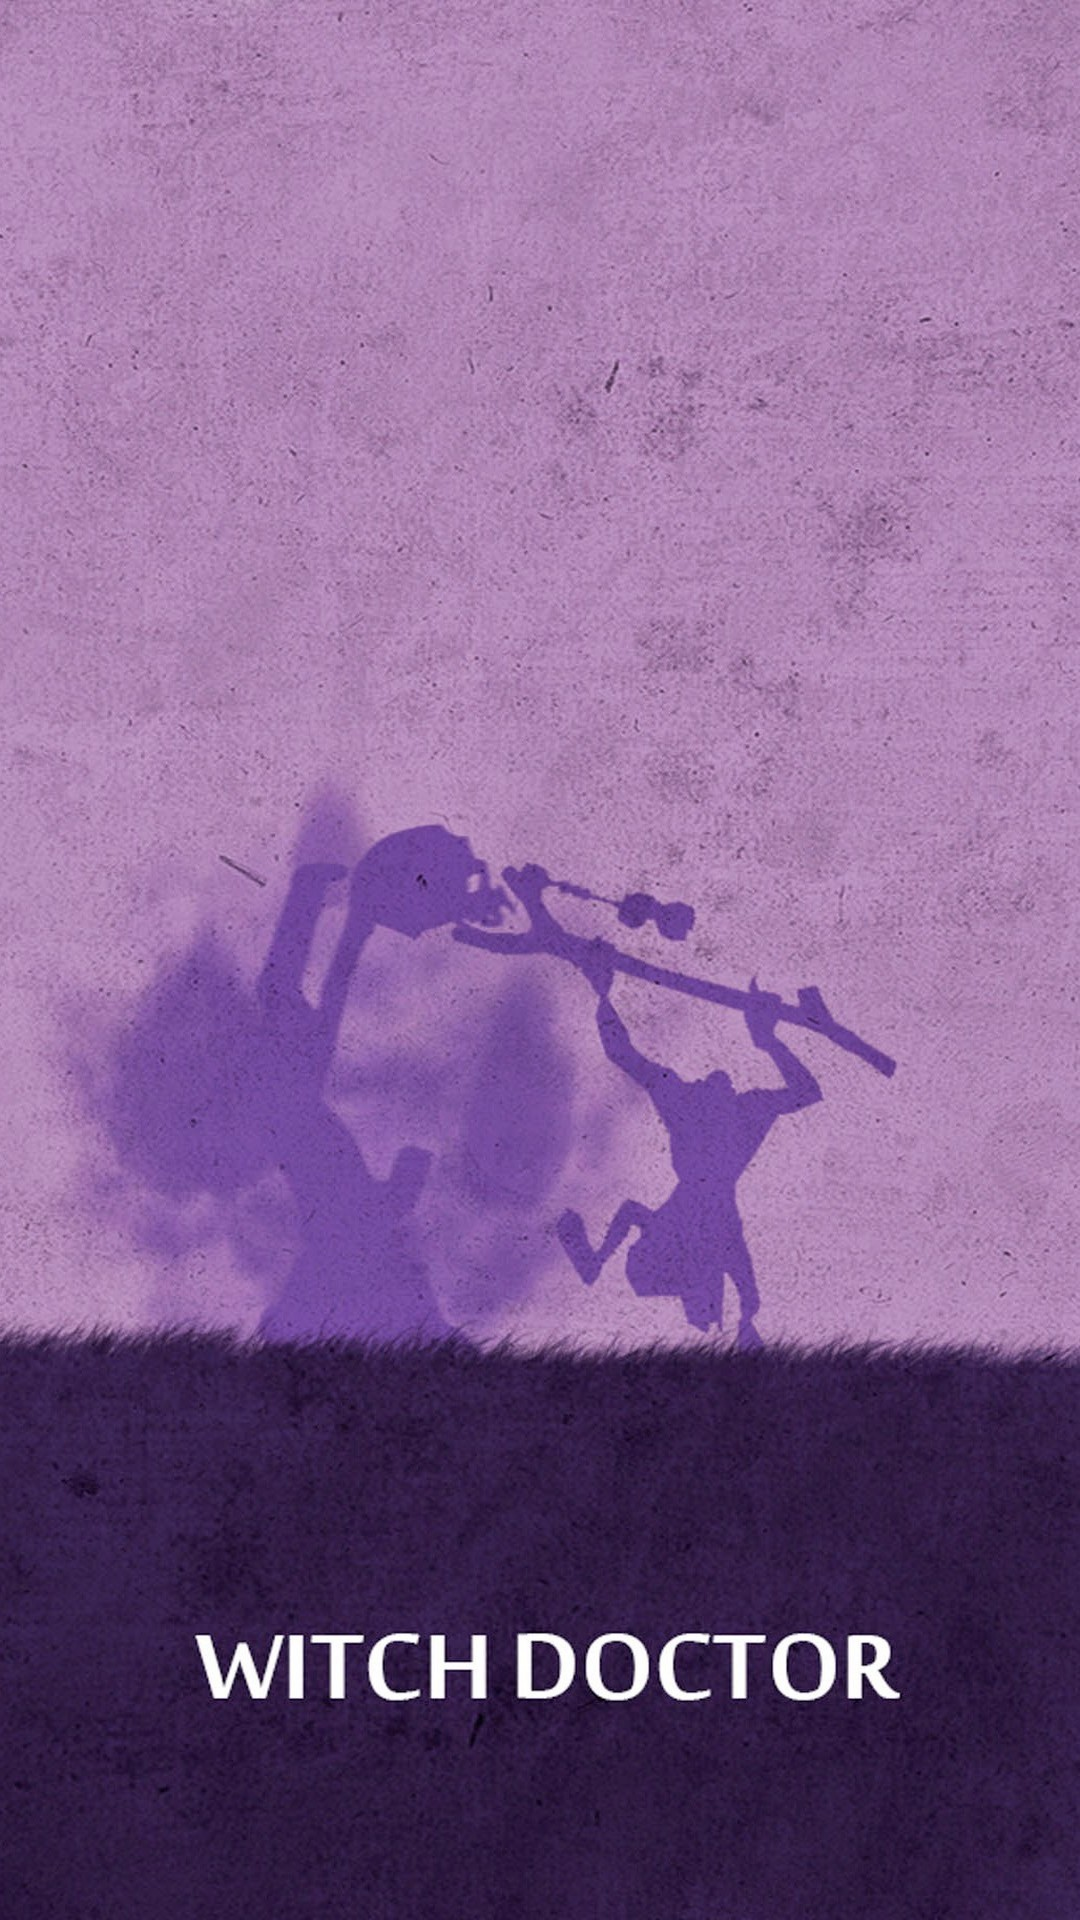 DOTA 2 Witch Doctor. Tap image for more DOTA 2 iPhone wallpaper! – @